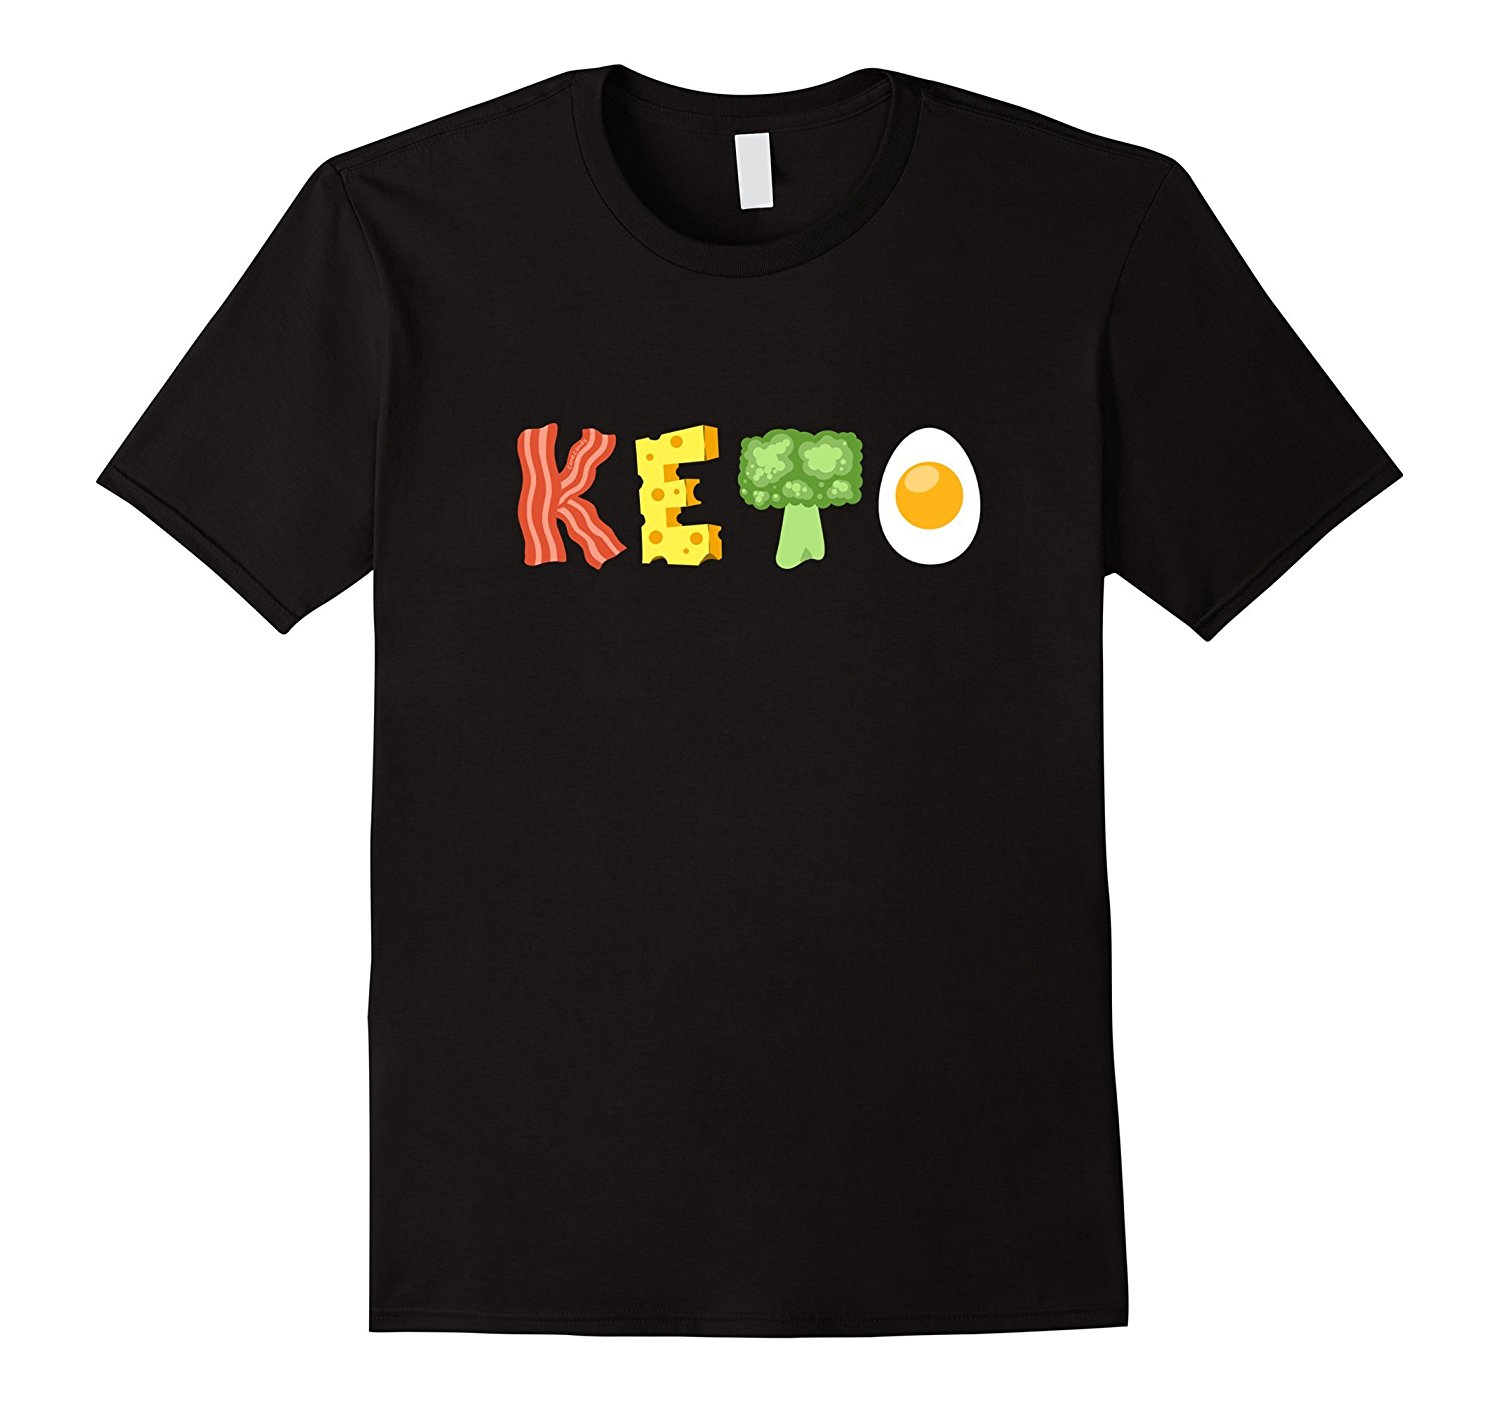 Keto Low-Carb Diet T-Shirt 100% Cotton Printed Novelty Cool Tops Men'S Short Sleeve Tee